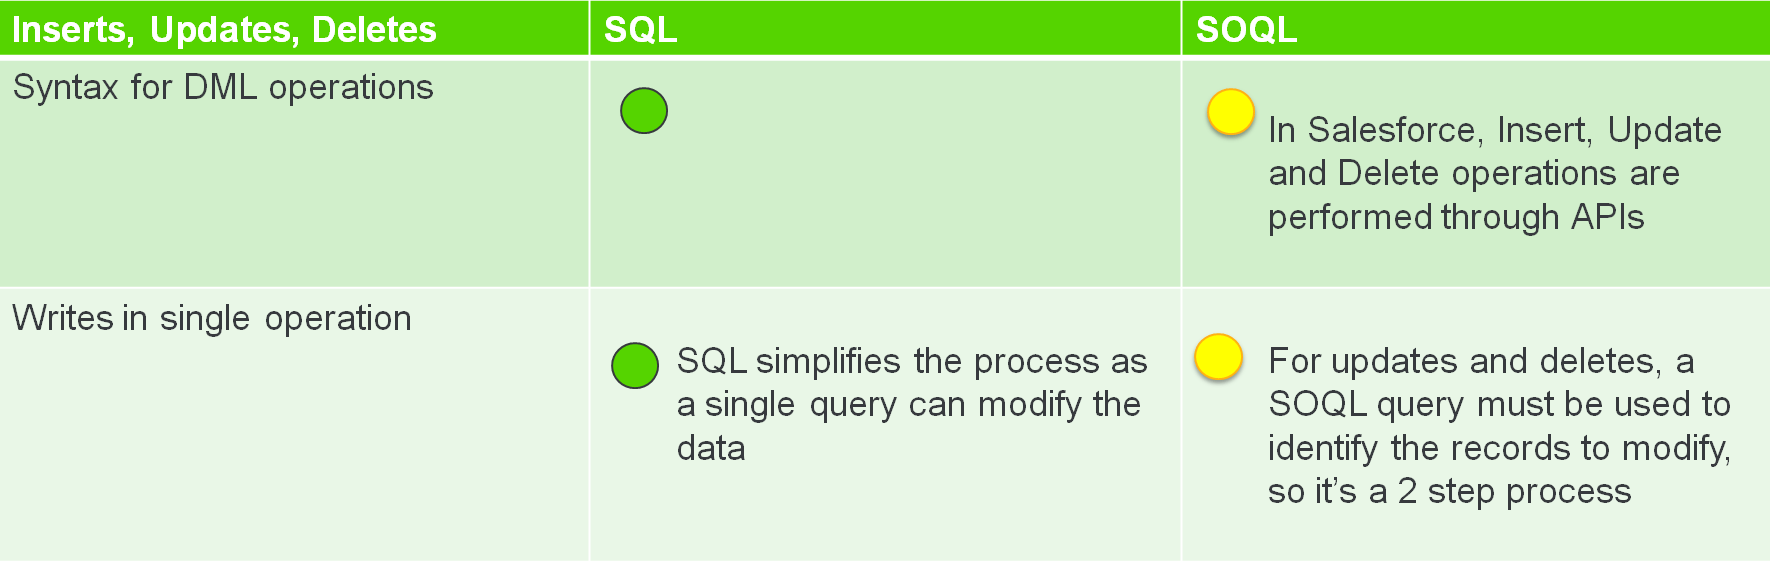 SQL or SOQL for Your Next Salesforce Analytics Project?